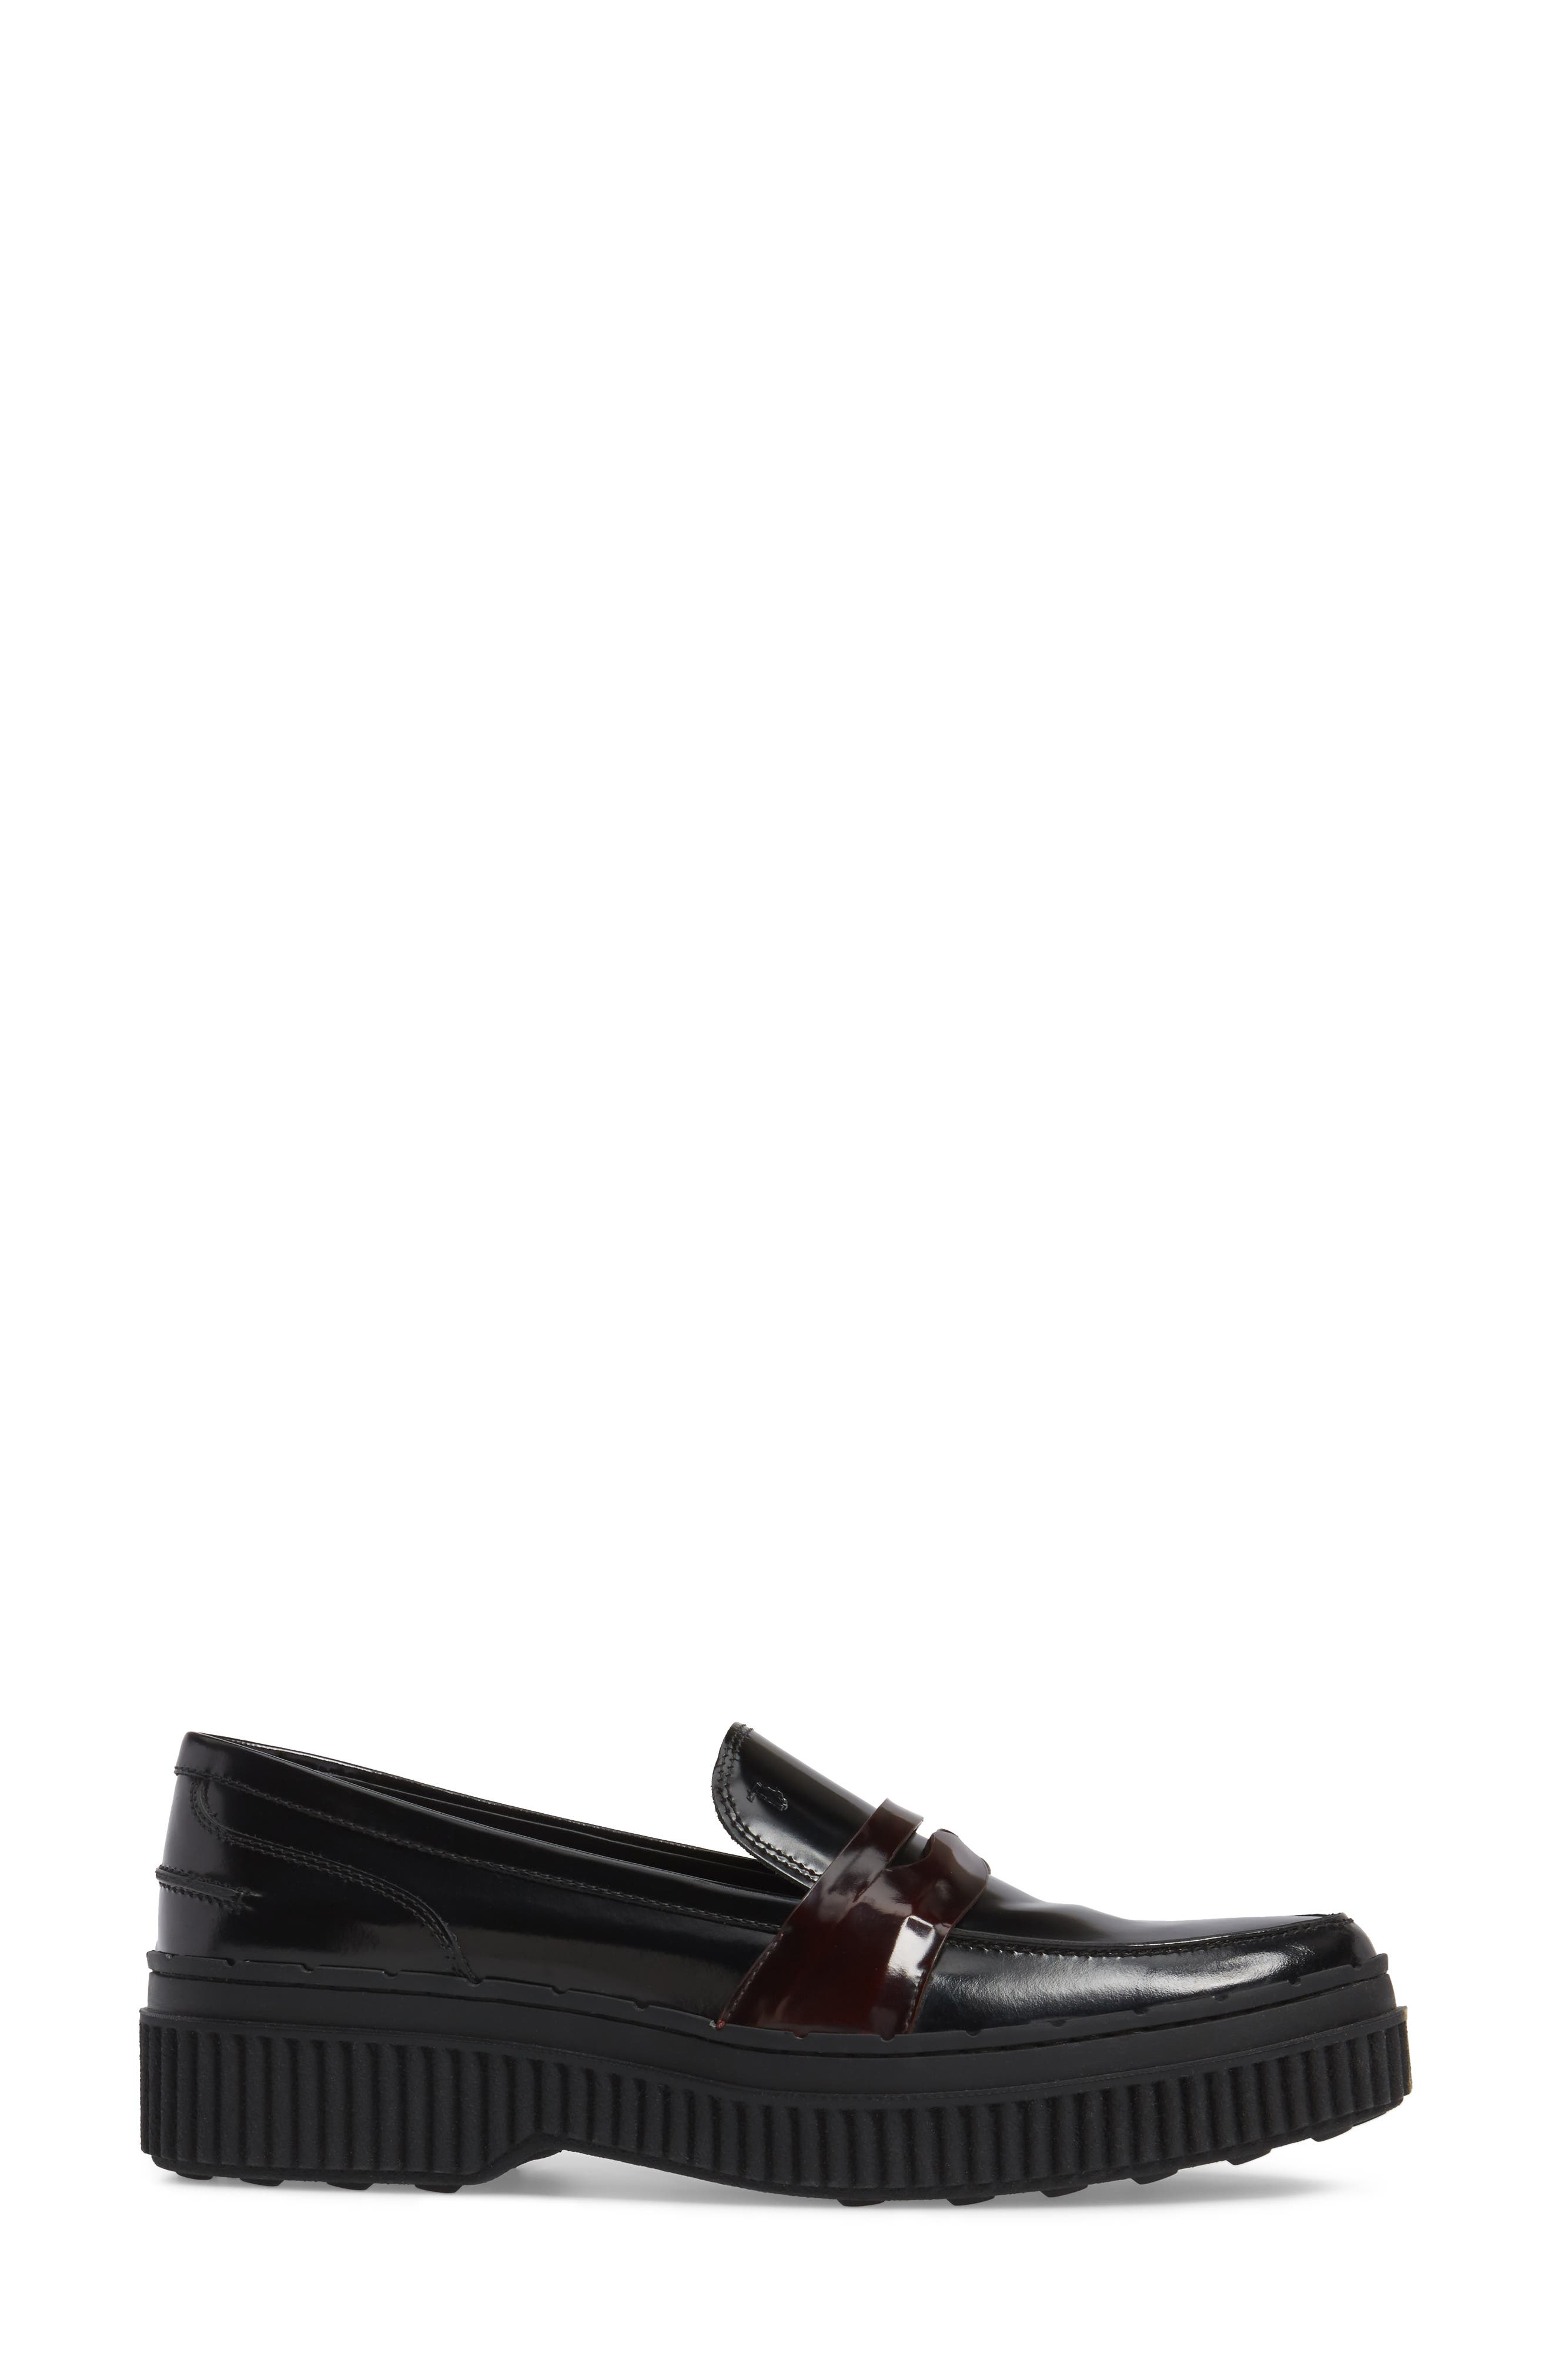 Penny Creeper Loafer,                             Alternate thumbnail 3, color,                             BLACK/ OXBLOOD